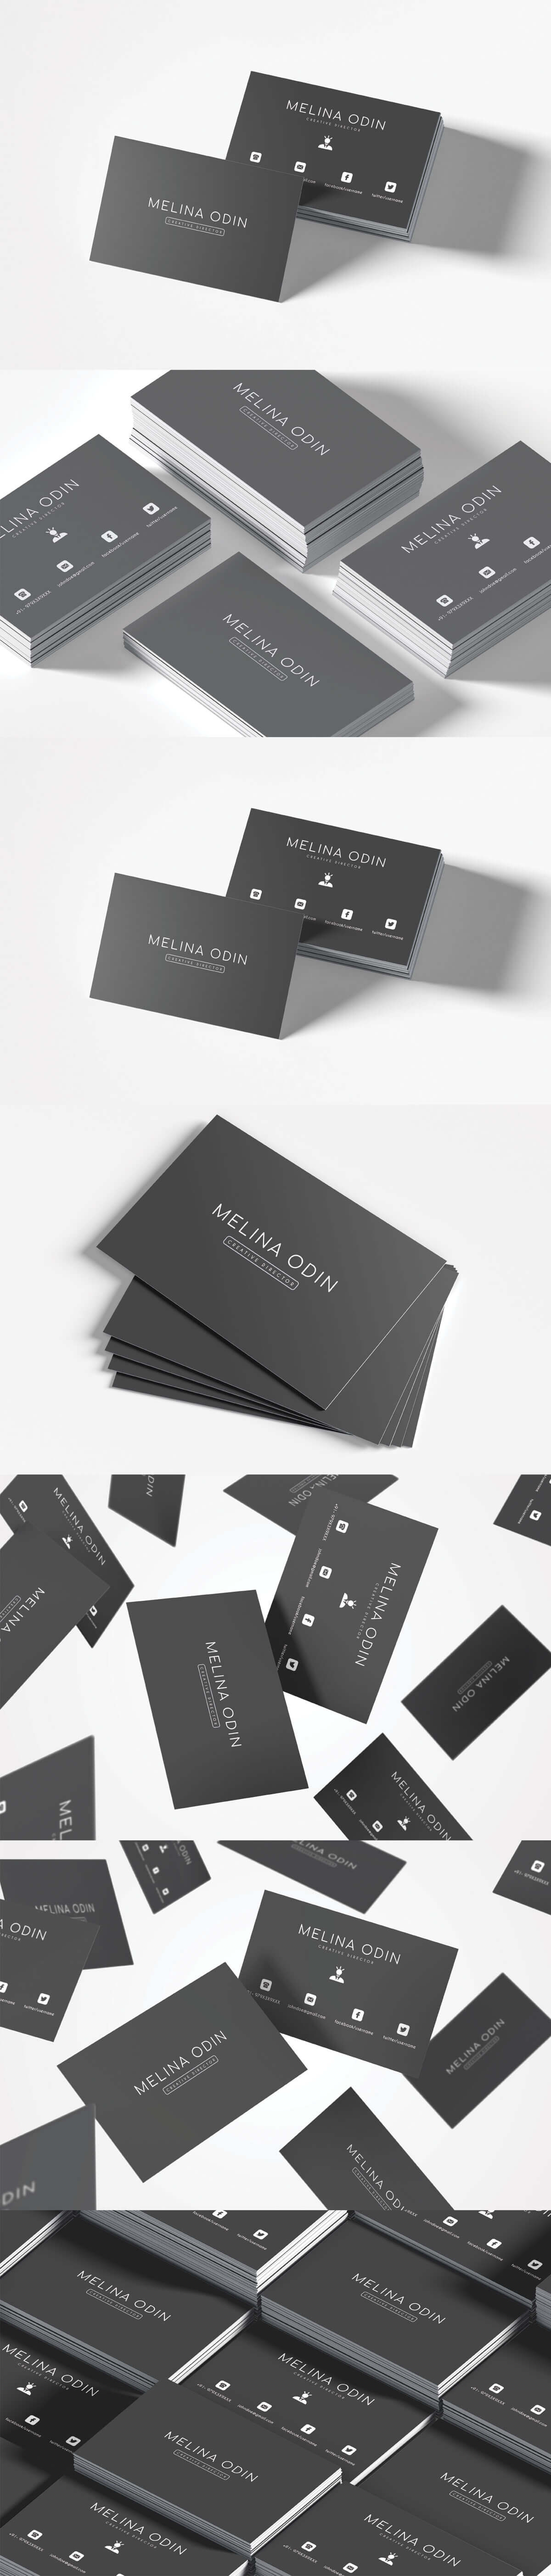 Free creative design business card template creativetacos free creative design business card template wajeb Images